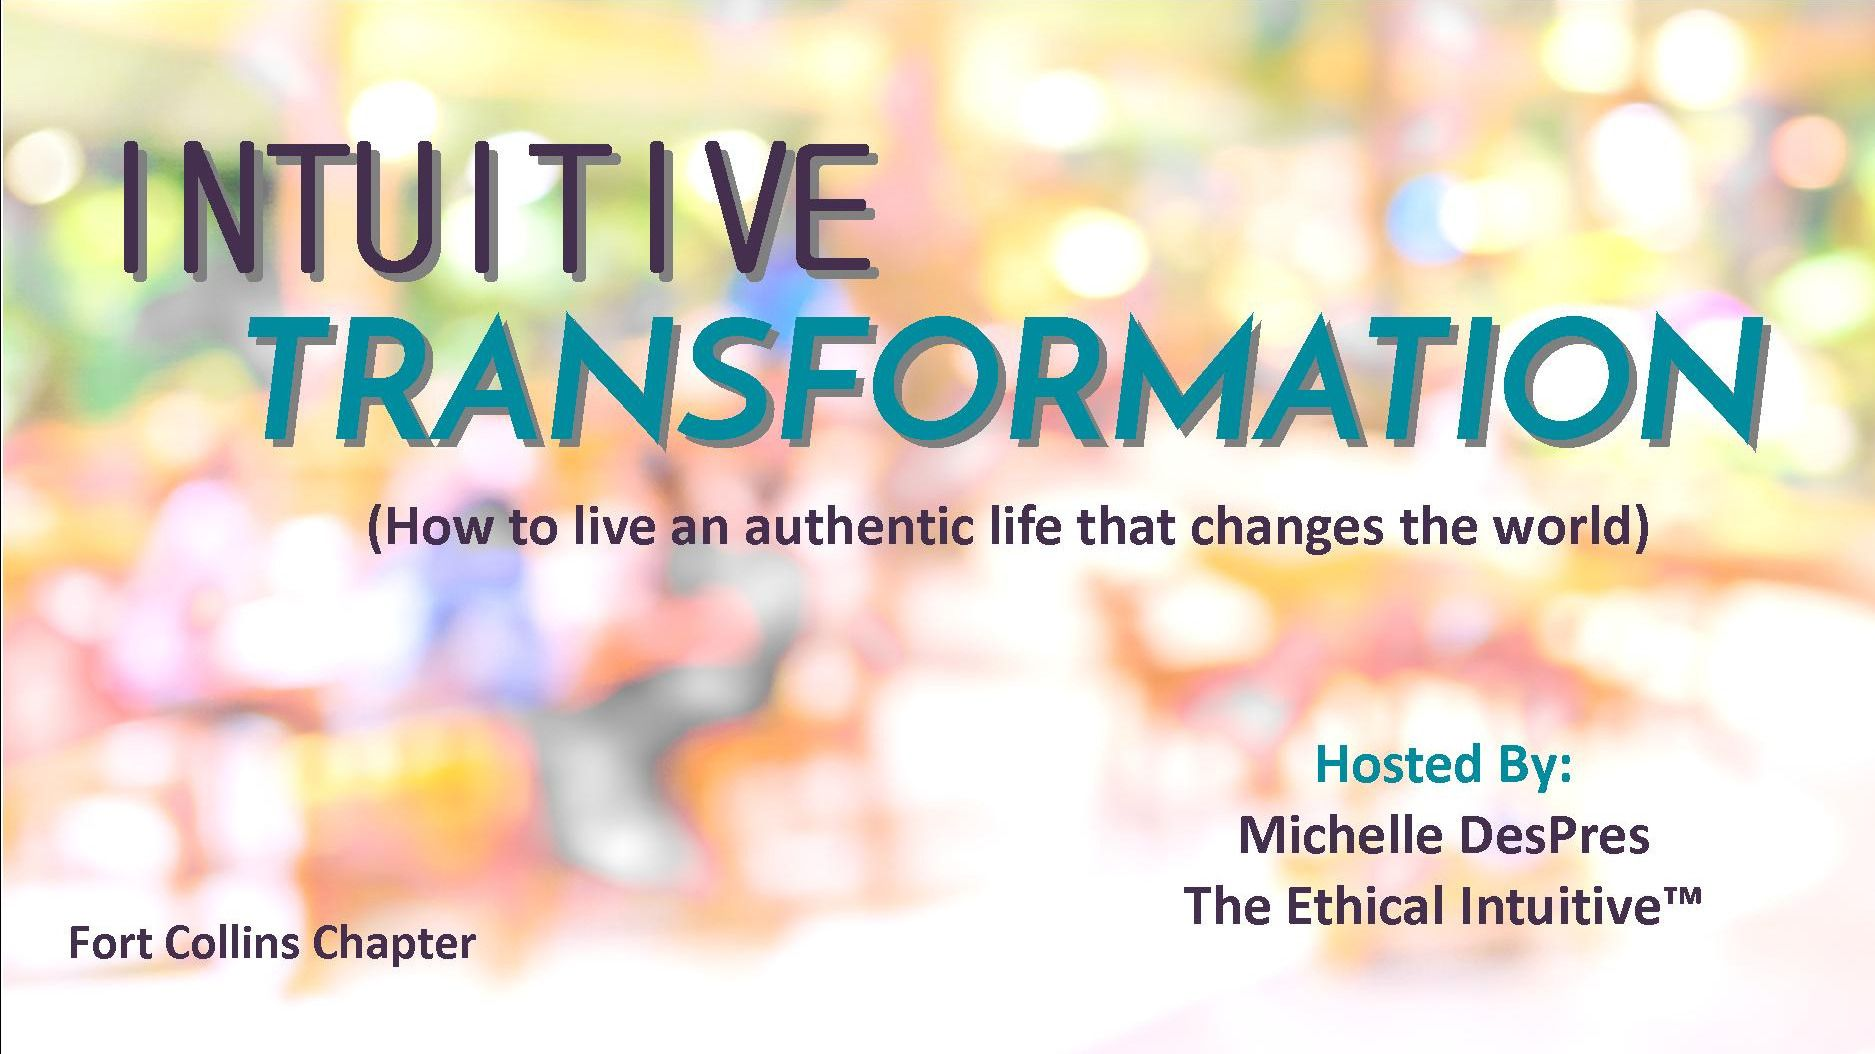 Intuitive Transformation - Fort Collins